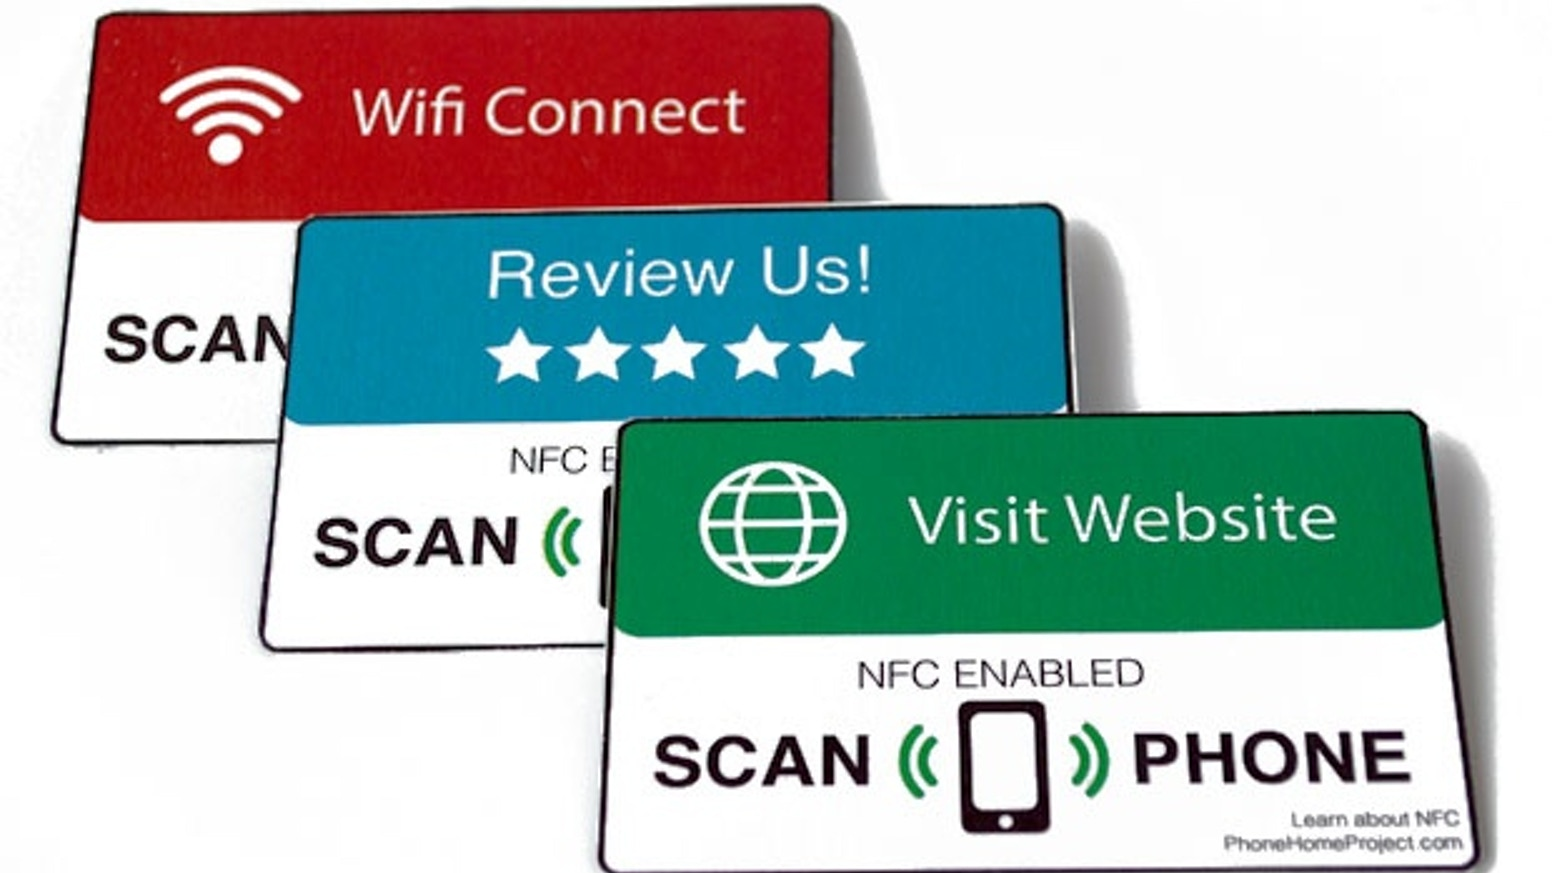 Nfc business cards customized convenient communicative by create shortcuts for your favorite smartphone tasks deliver digital resources to anyone reheart Gallery